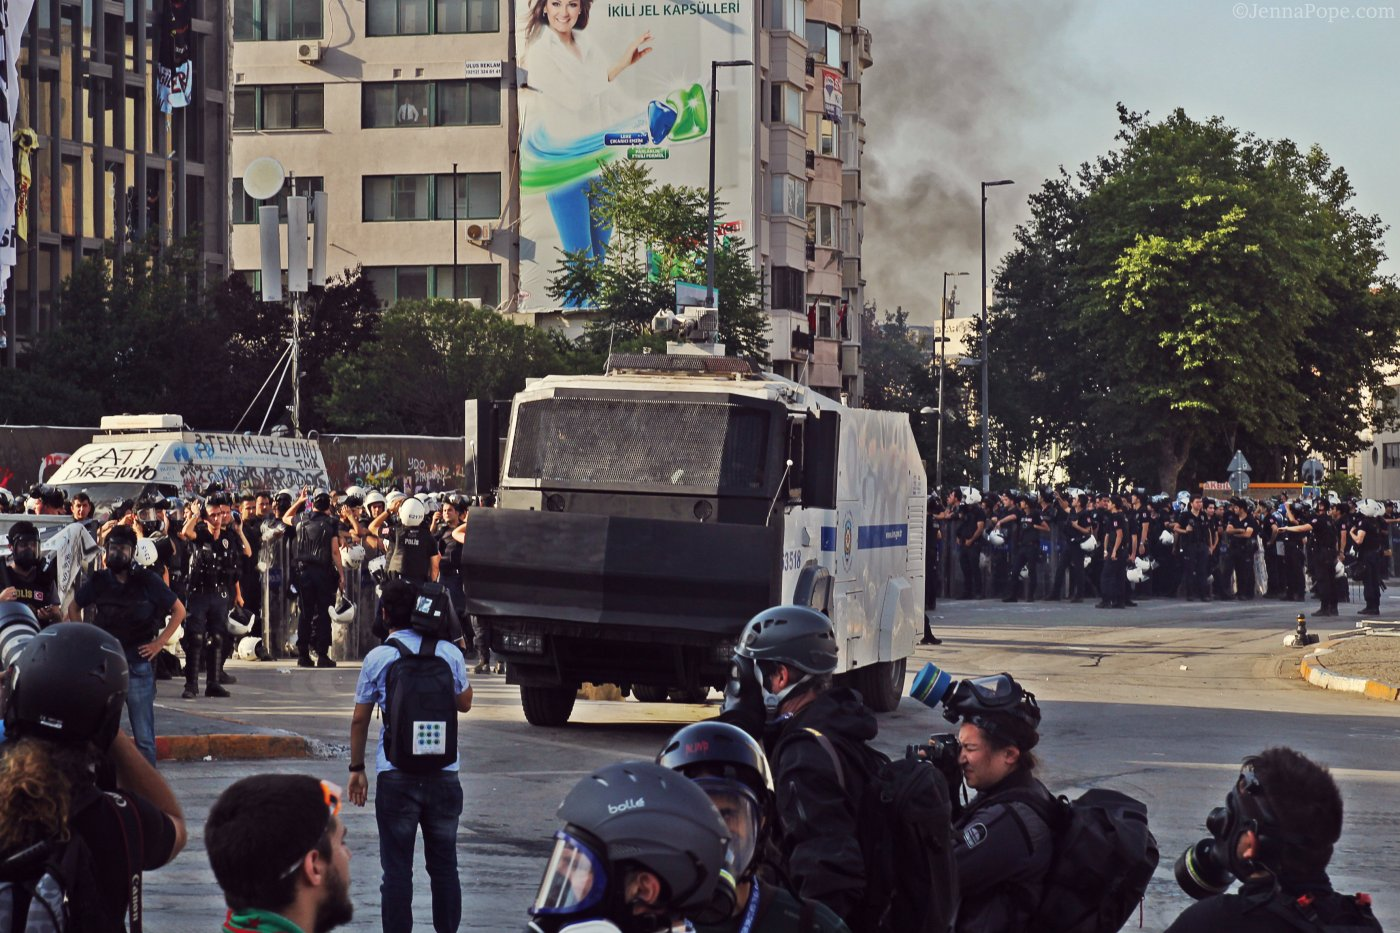 Hundreds of police officers, along with water cannon trucks, sitting in Taksim Square.